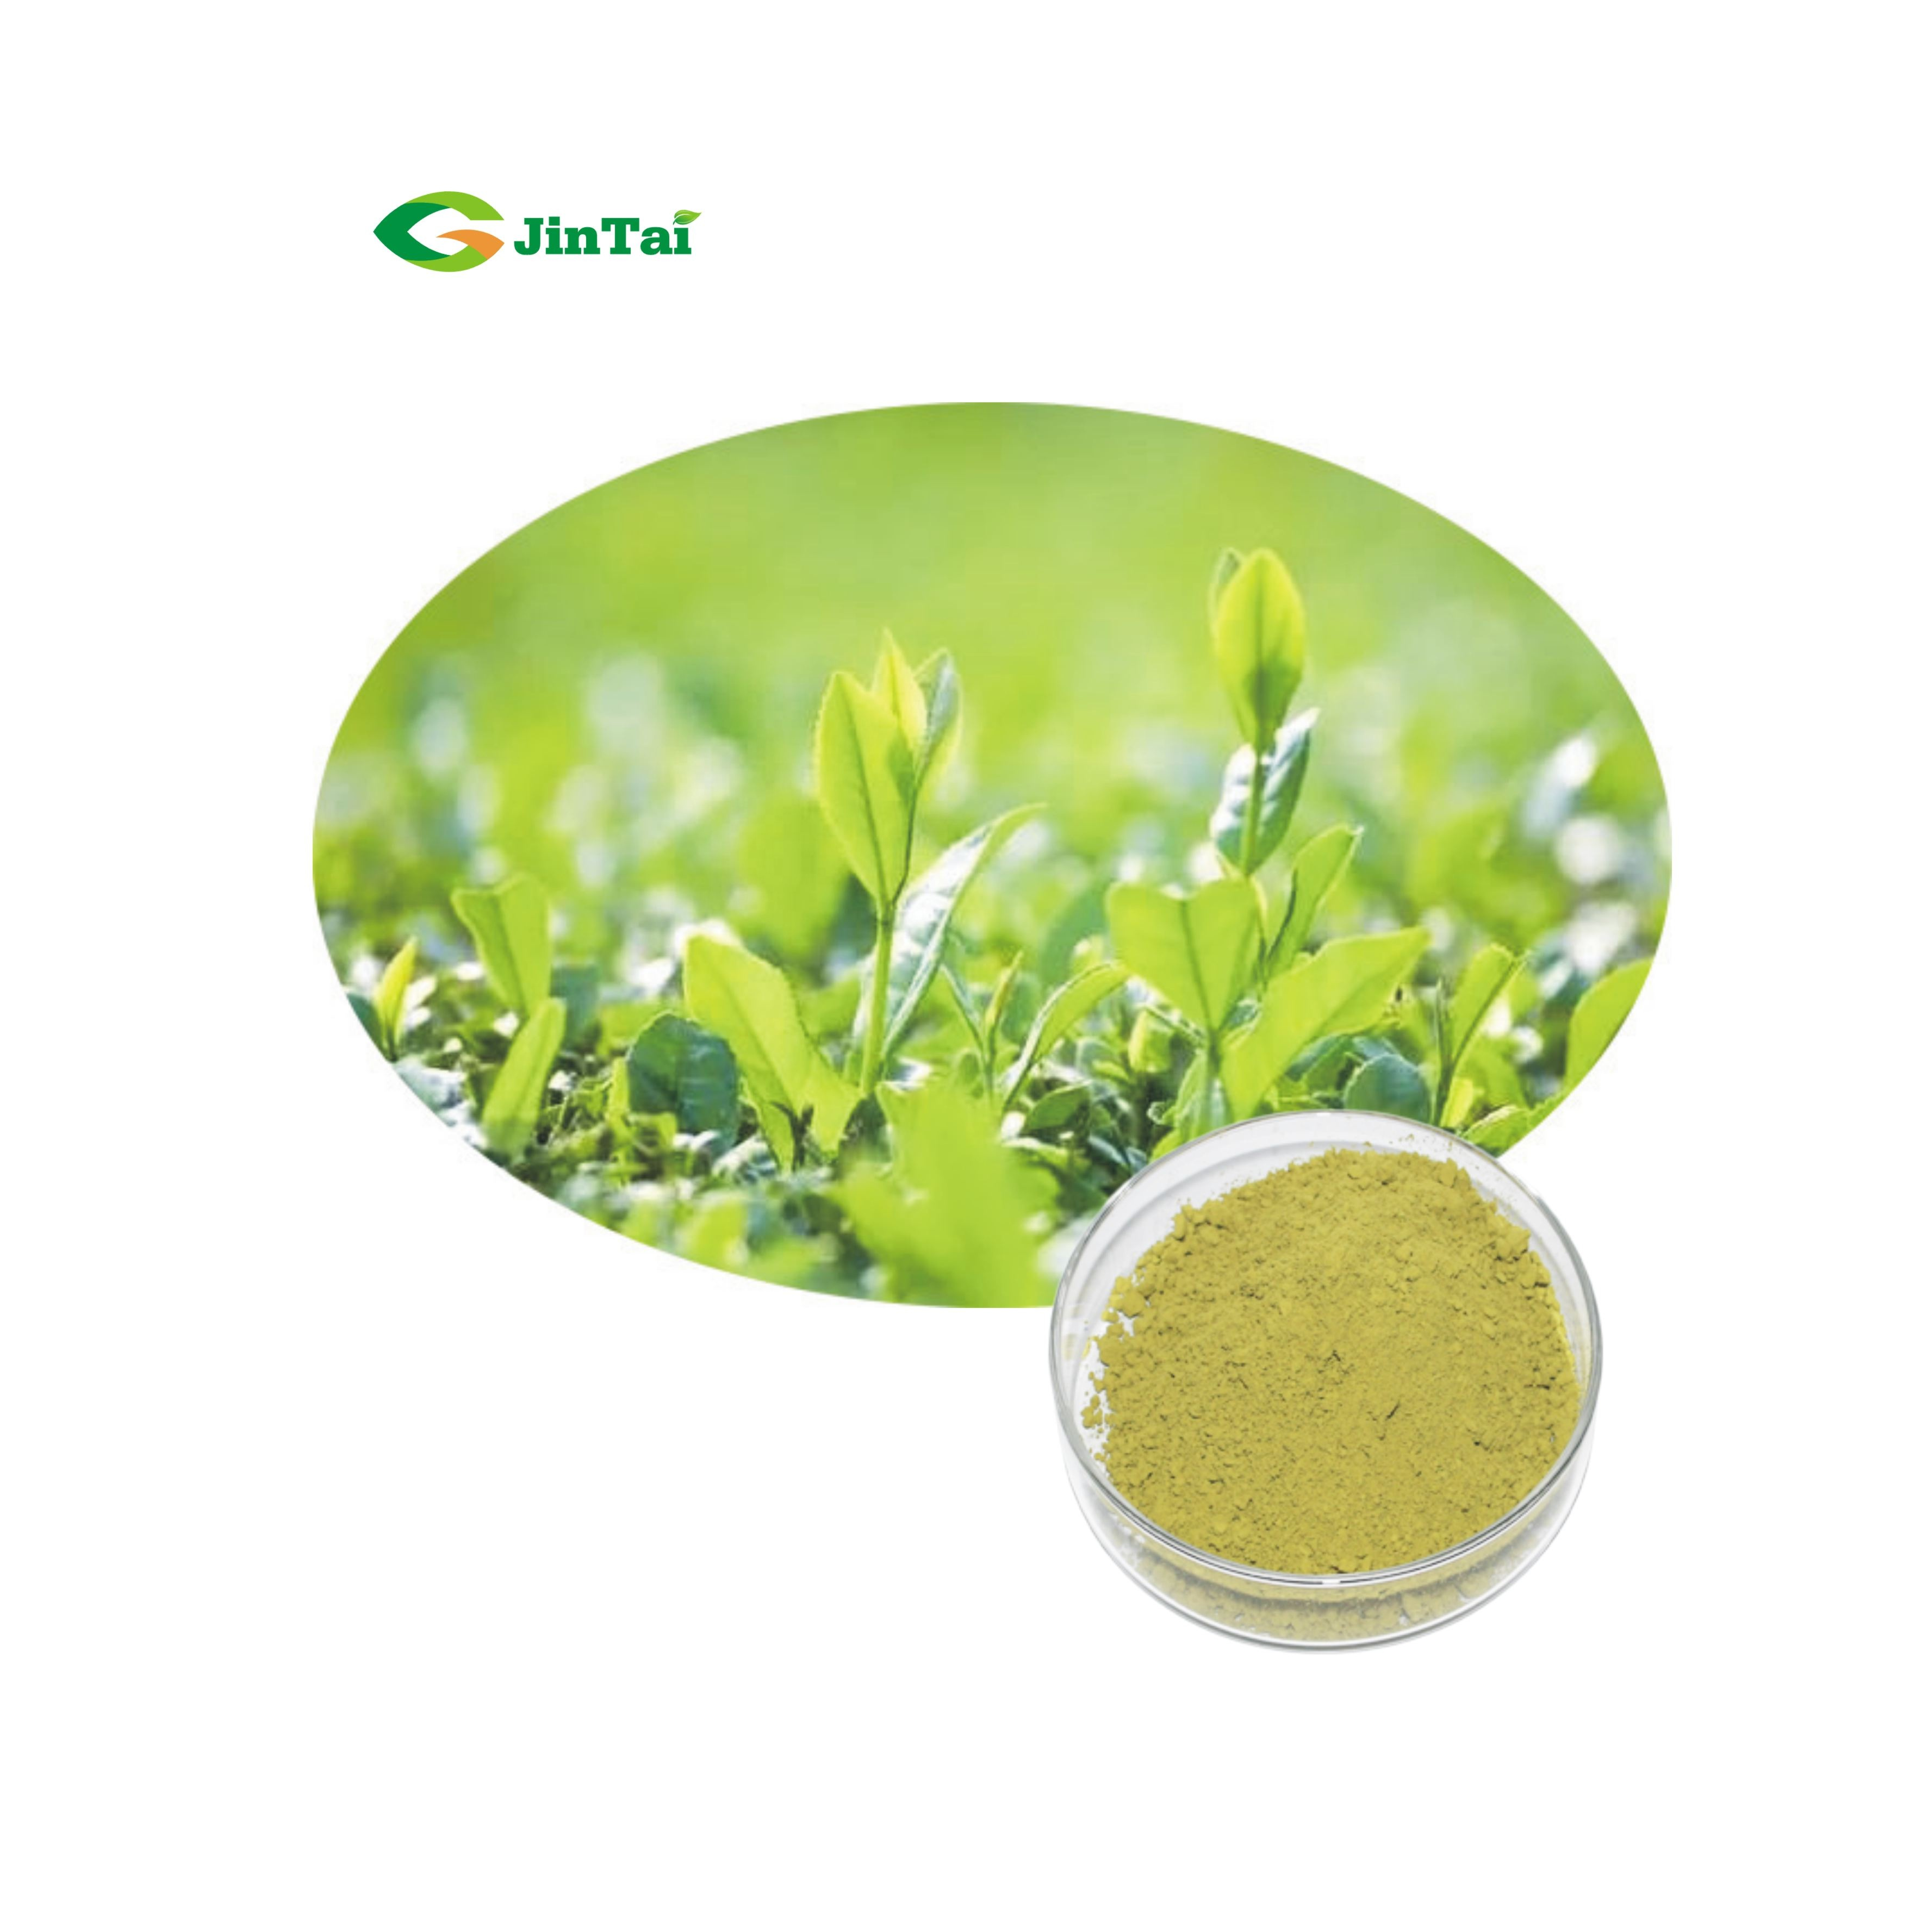 100% Water Soluble Greentea Matcha Matcha Tea Powder - 4uTea | 4uTea.com